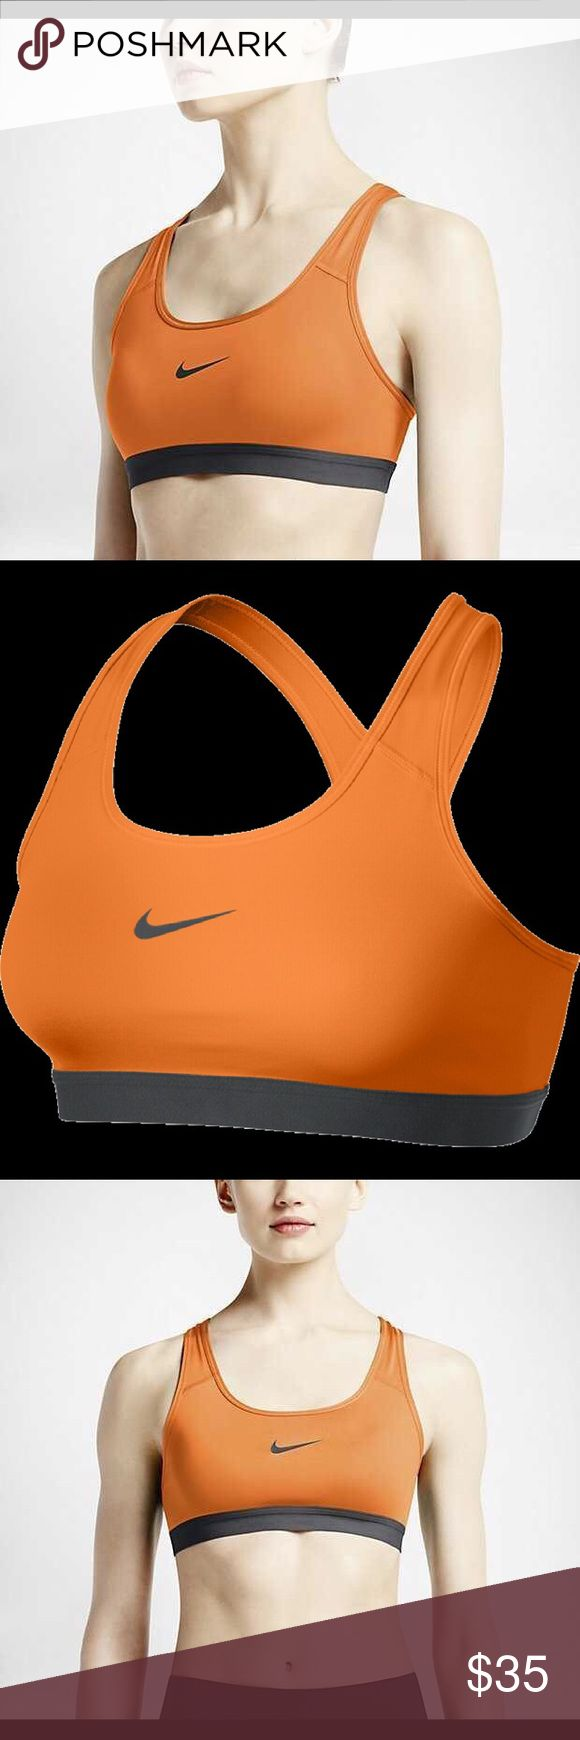 NIKE Pro Classic Orange Sports Bra! NWT! New with tags, never worn! Nike Pro Classic Dri-FIT unpadded sports bra with 360 degree medium support. Racerback style for full range of motion. Compression fit provides support for mid-impact activities. Flat seams and an elastic band for a secure and comfortable fit. Orange body with dark charcoal grey band and swoosh (screen printed on the middle of the chest). Body and lining are 88% recycled polyester and 12% spandex. Bottom hem is 90% nylon and…